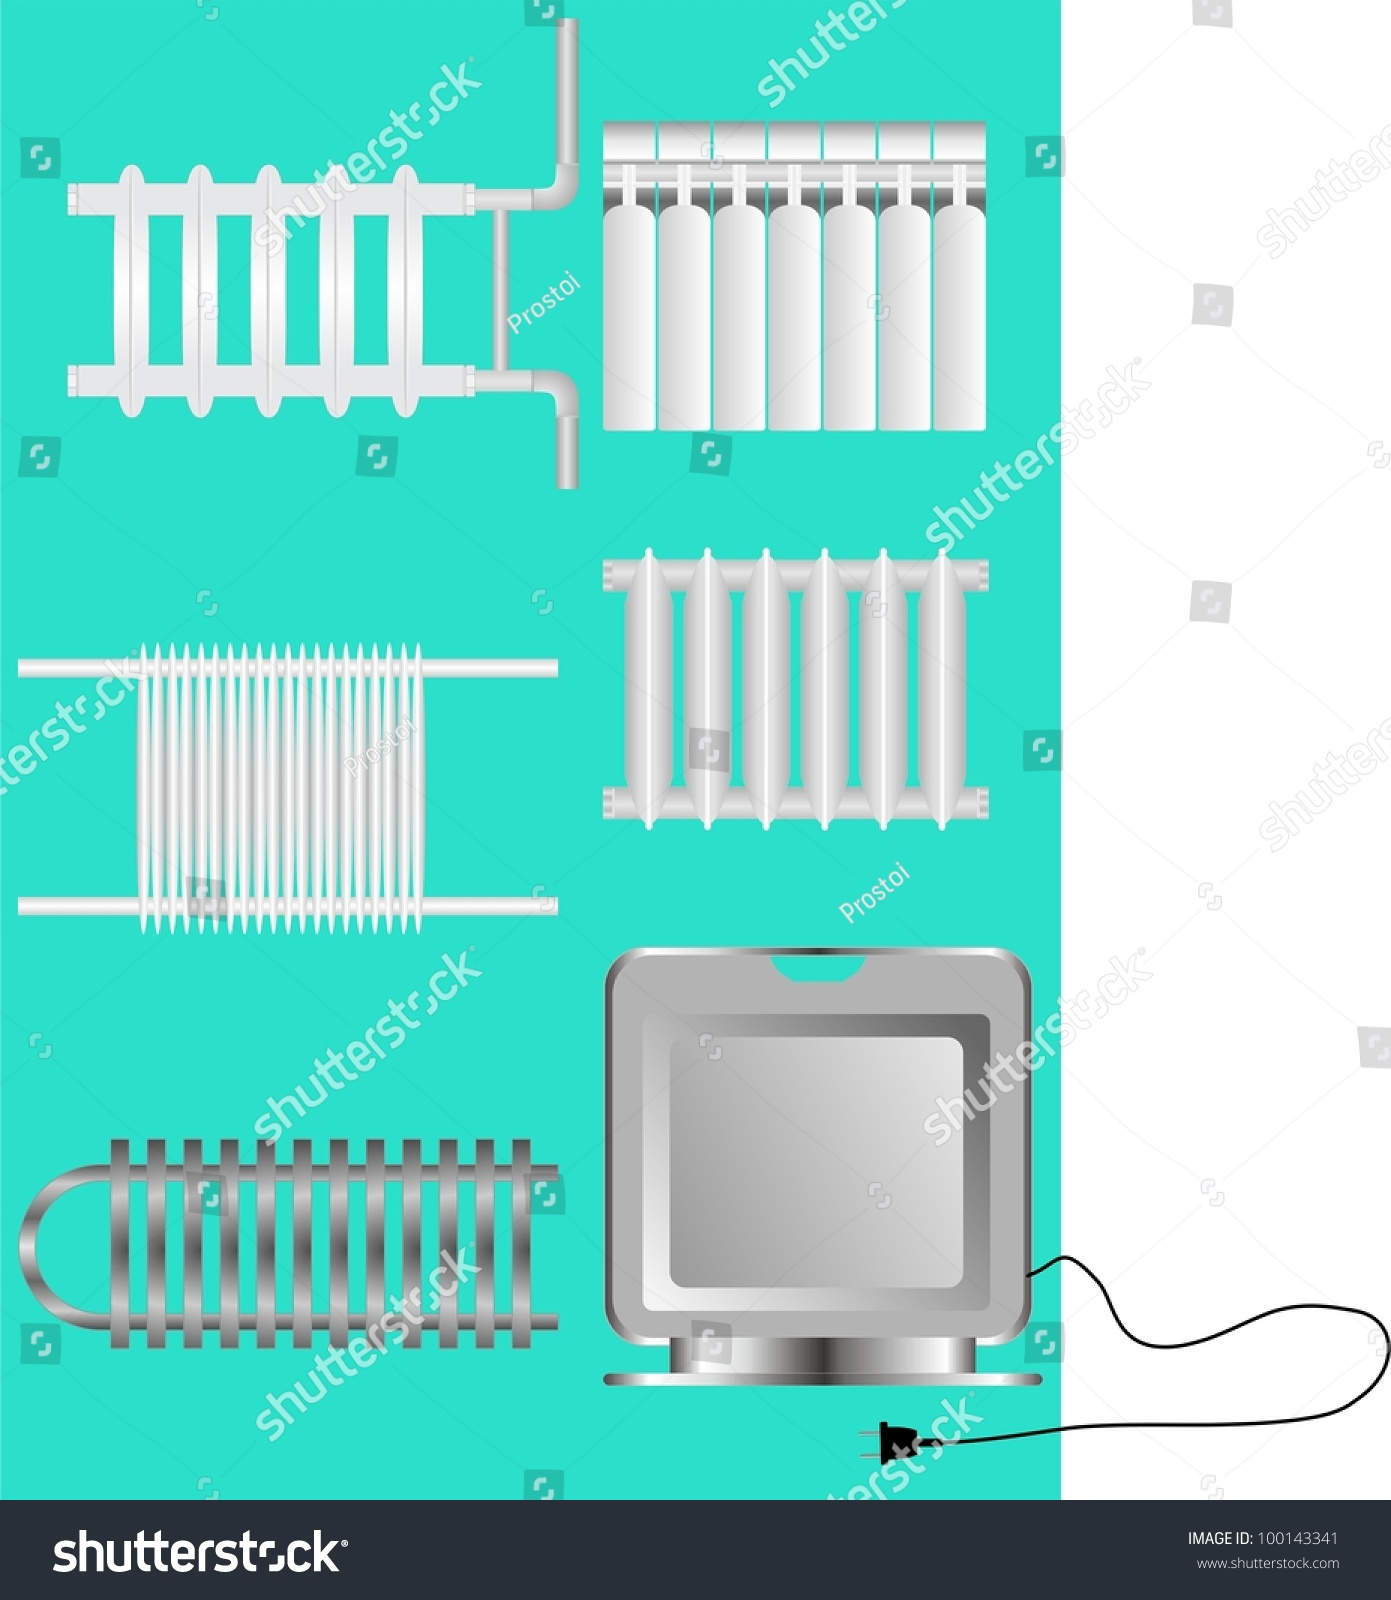 Types Heaters Heating On Green Background Stock Vector 100143341 ...